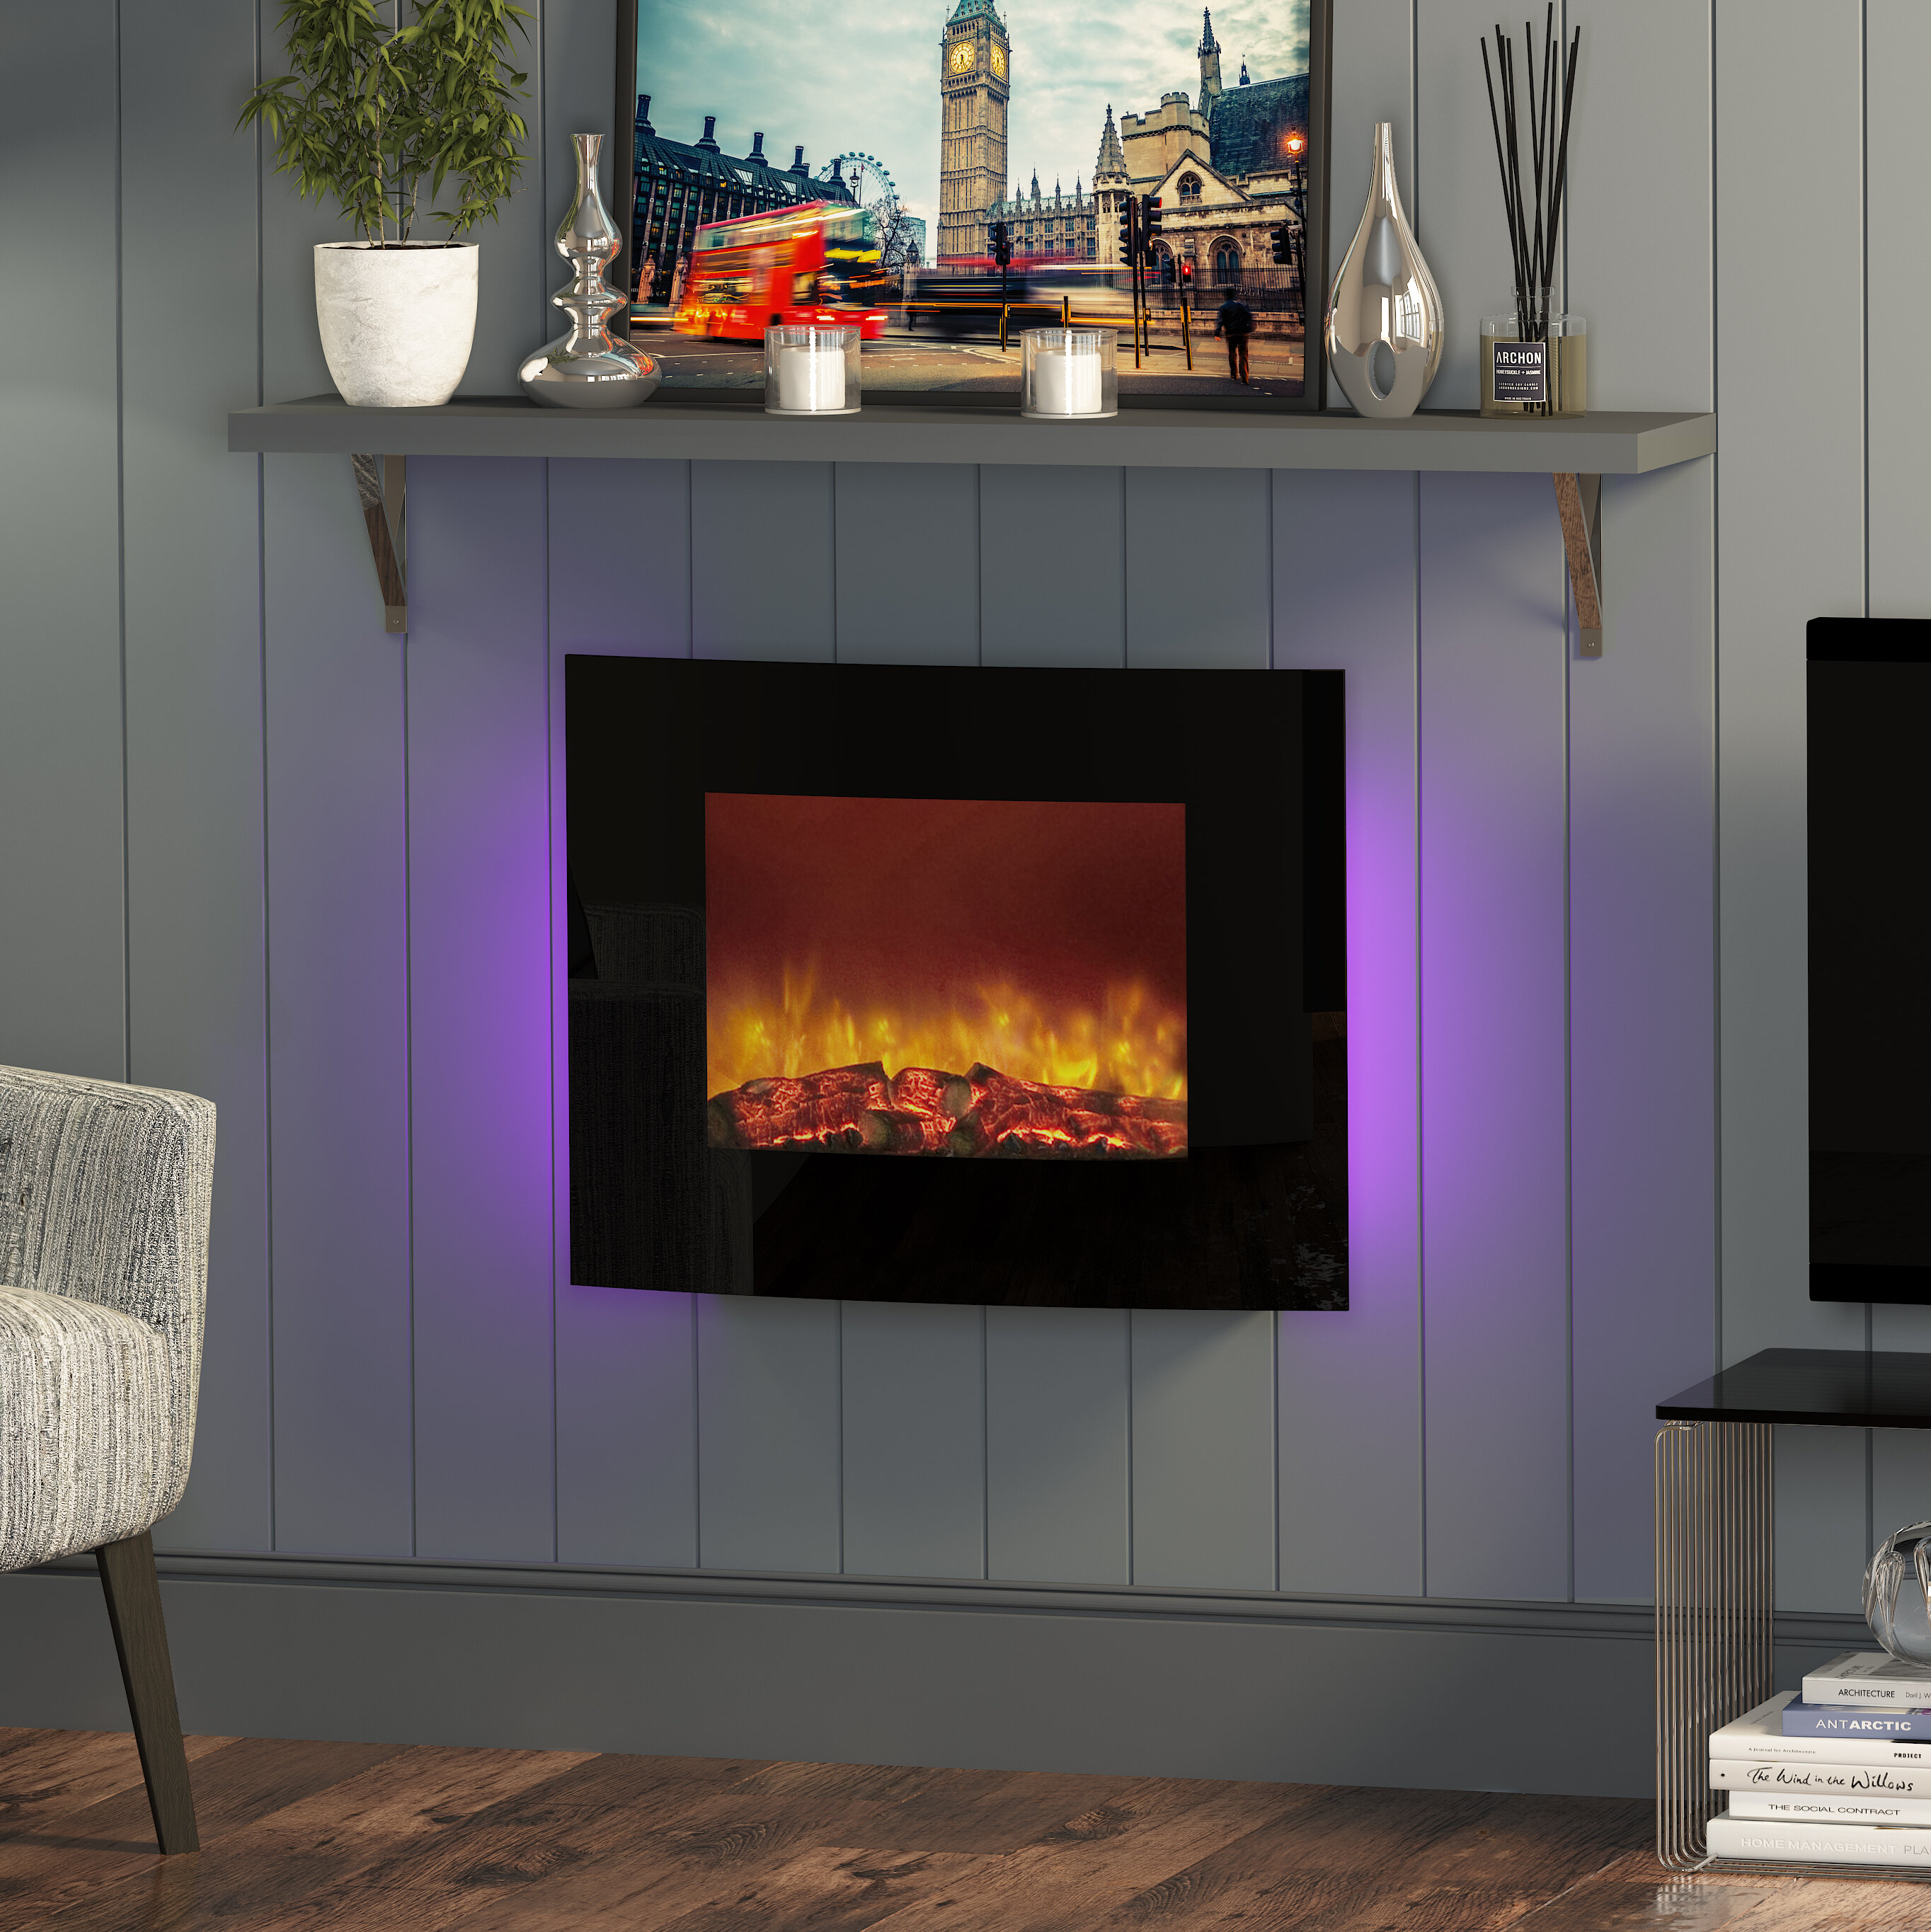 bemodern in uk wayfair reviews plug pdp plumbing co diy stanton electric fireplace